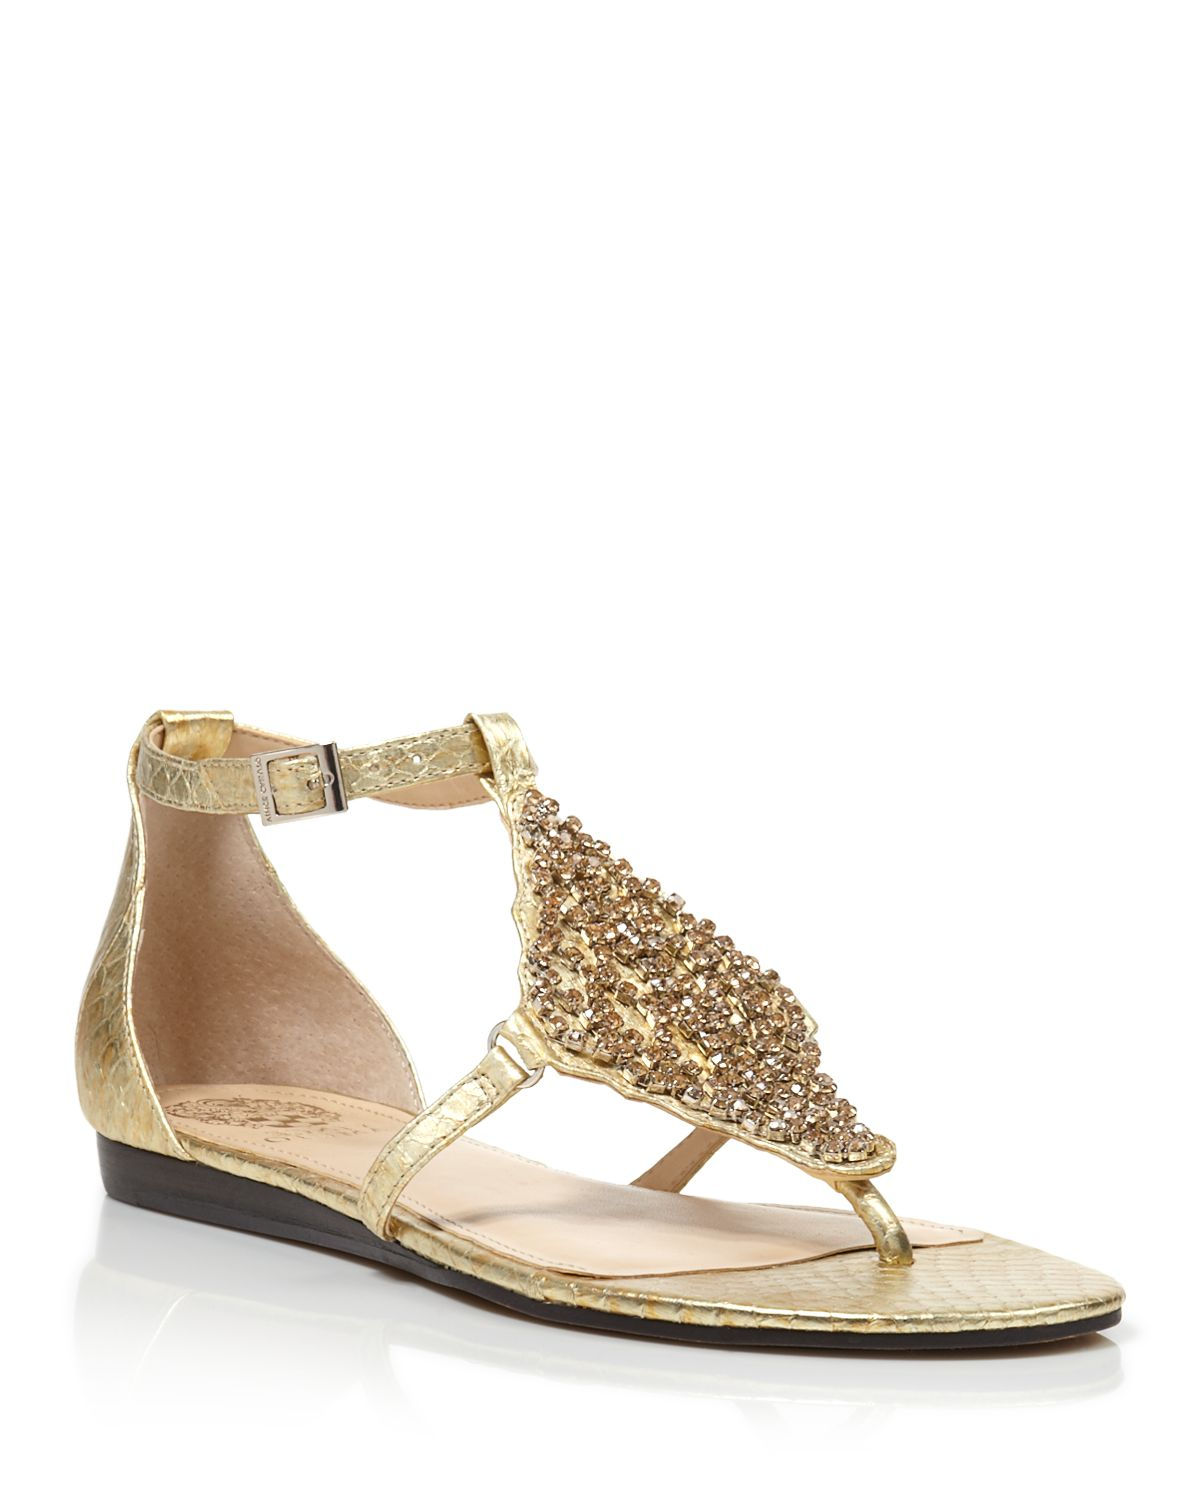 5b4682d3d Lyst - Vince Camuto Flat Thong Sandals - Valeen Jeweled ...